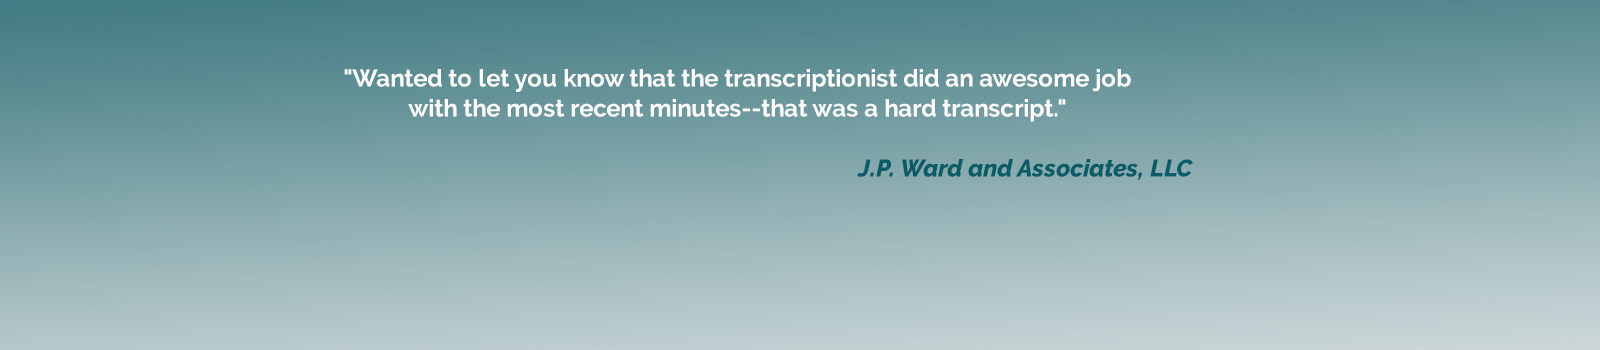 Transcription Experts_Testimonials8